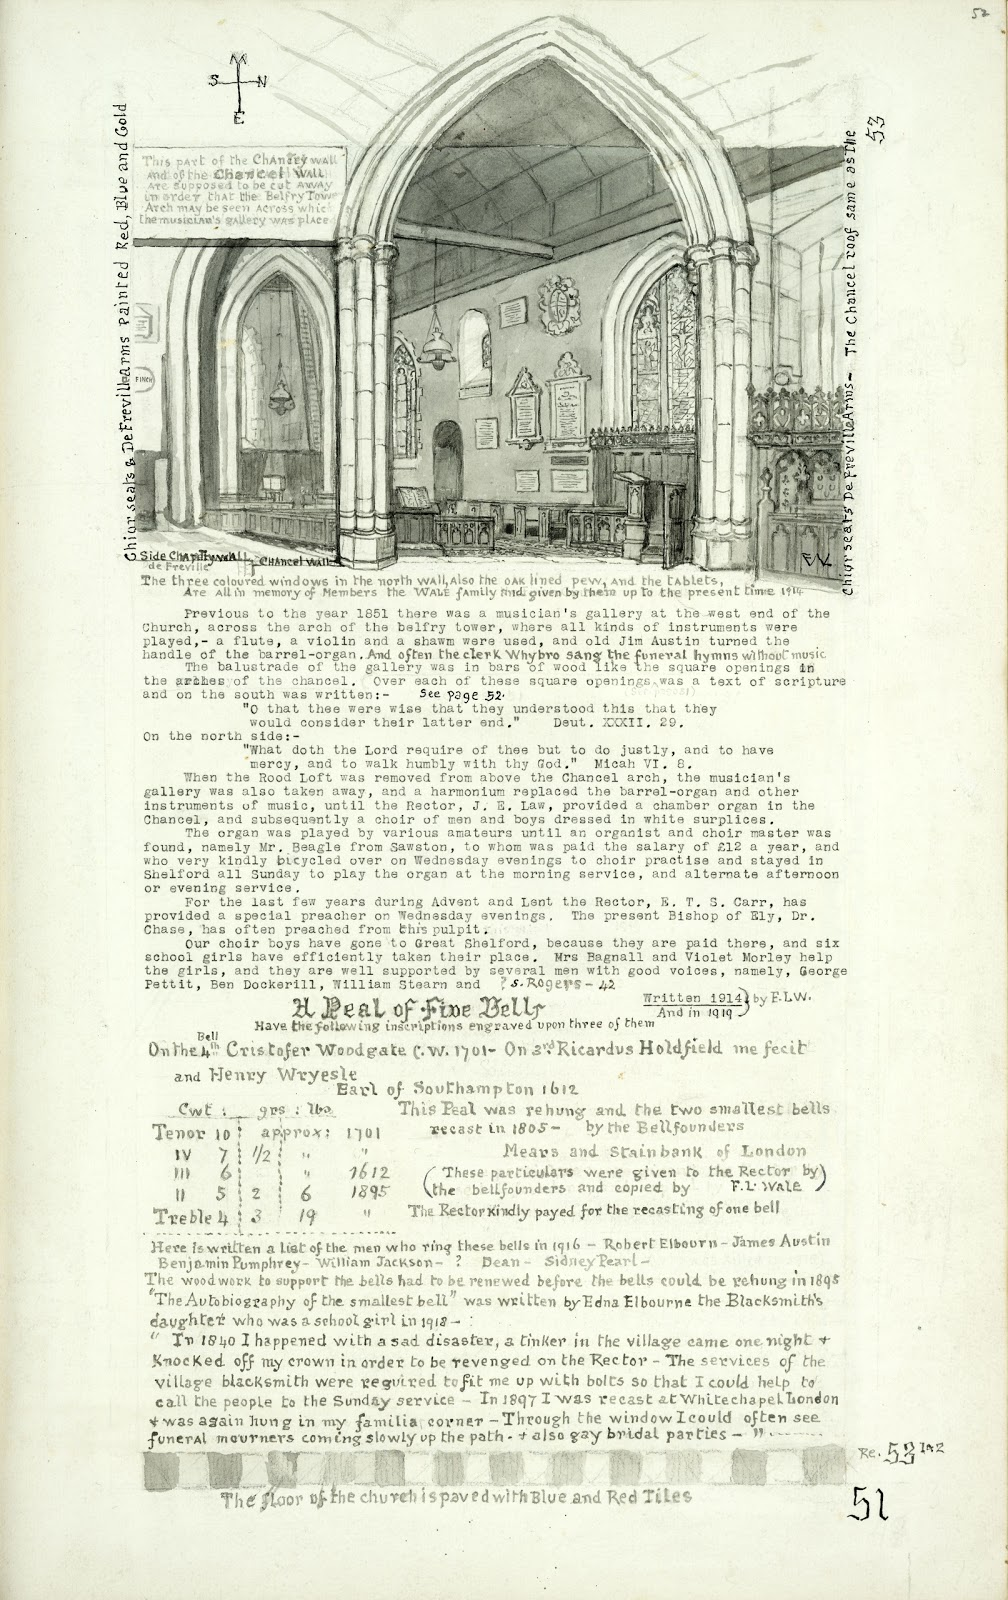 A Record of Shelford Parva by Fanny Wale P51 fo. 52, page 51: A black and white watercolour painting of the church interior with information of the interior of the church, 1914. Underneath that is information on the bells and ringers of 'All Saints Church'. [fo.41, but lacking tile design at the foot, and within mount E]